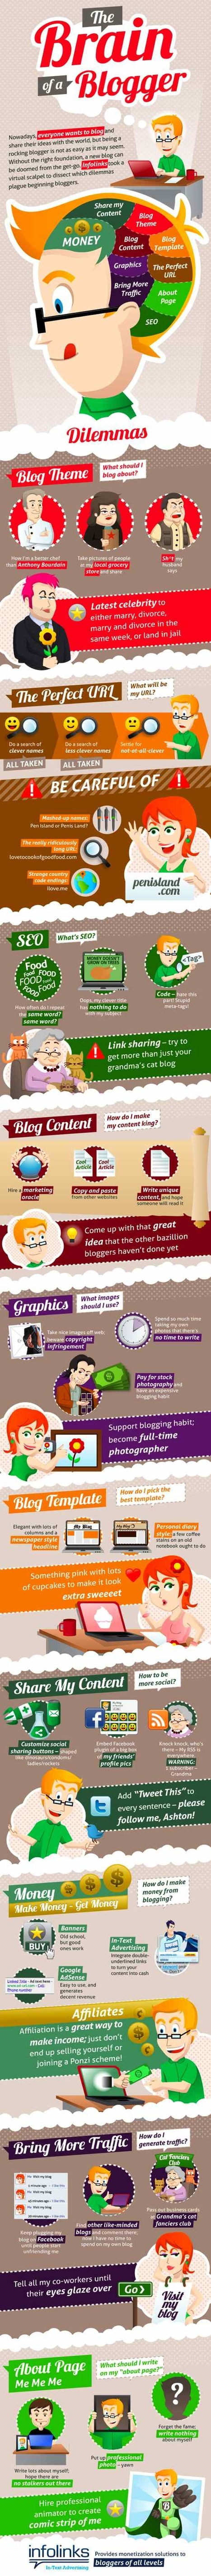 The Brain of the Beginning Blogger [INFOGRAPHIC]   Social media and education   Scoop.it